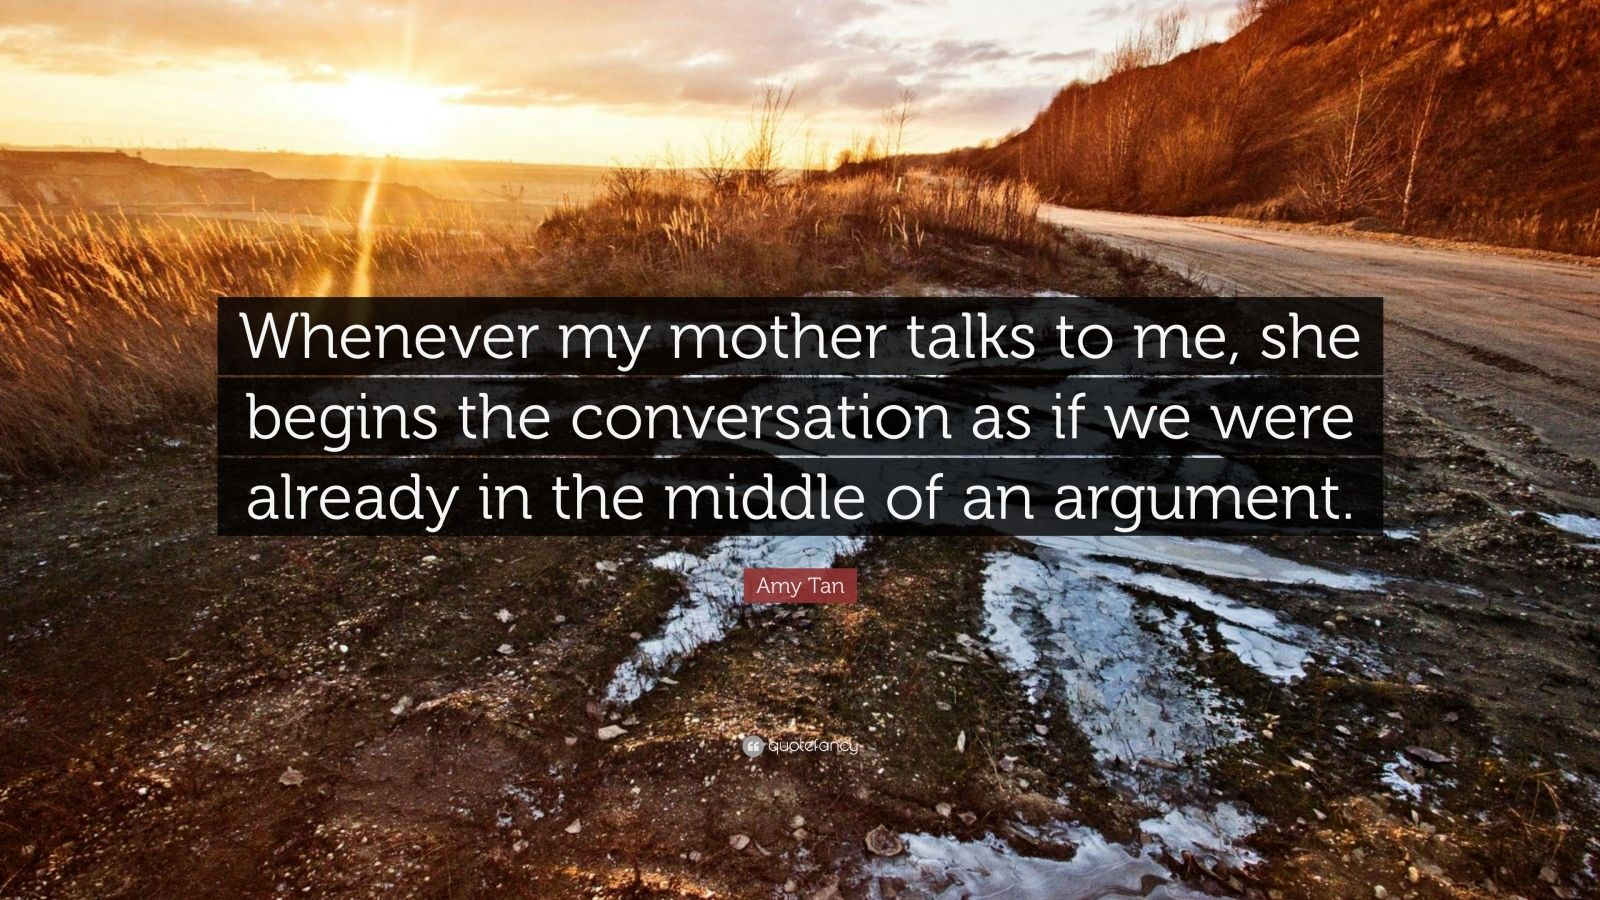 what is mother tongue by amy tan about amy tan academy of  amy tan quotes quotefancy amy tan quote whenever my mother talks to me she begins the